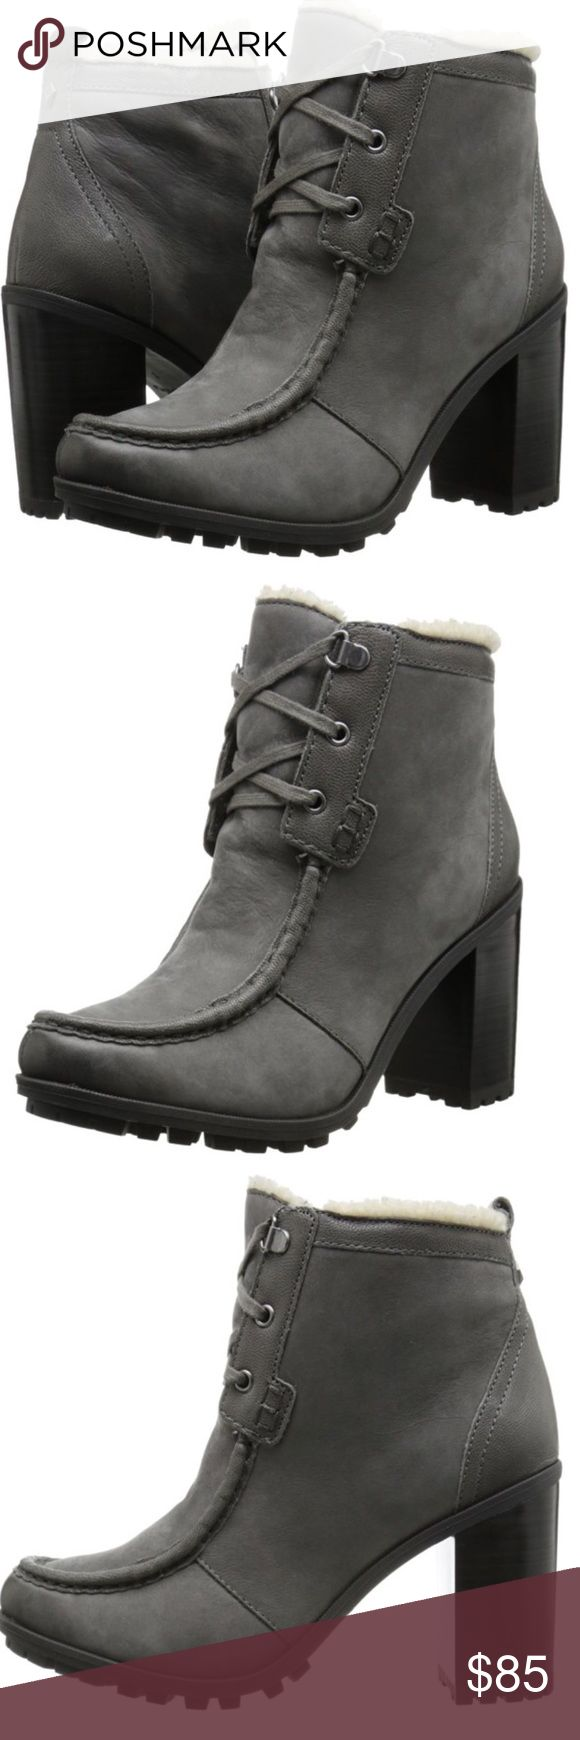 Sam Edelman Winter Heel Boots Cozy Sam Edelman booties made from faux shearling. Lace-up closure. Stacked heel. Lug sole. Sam Edelman Shoes Heeled Boots